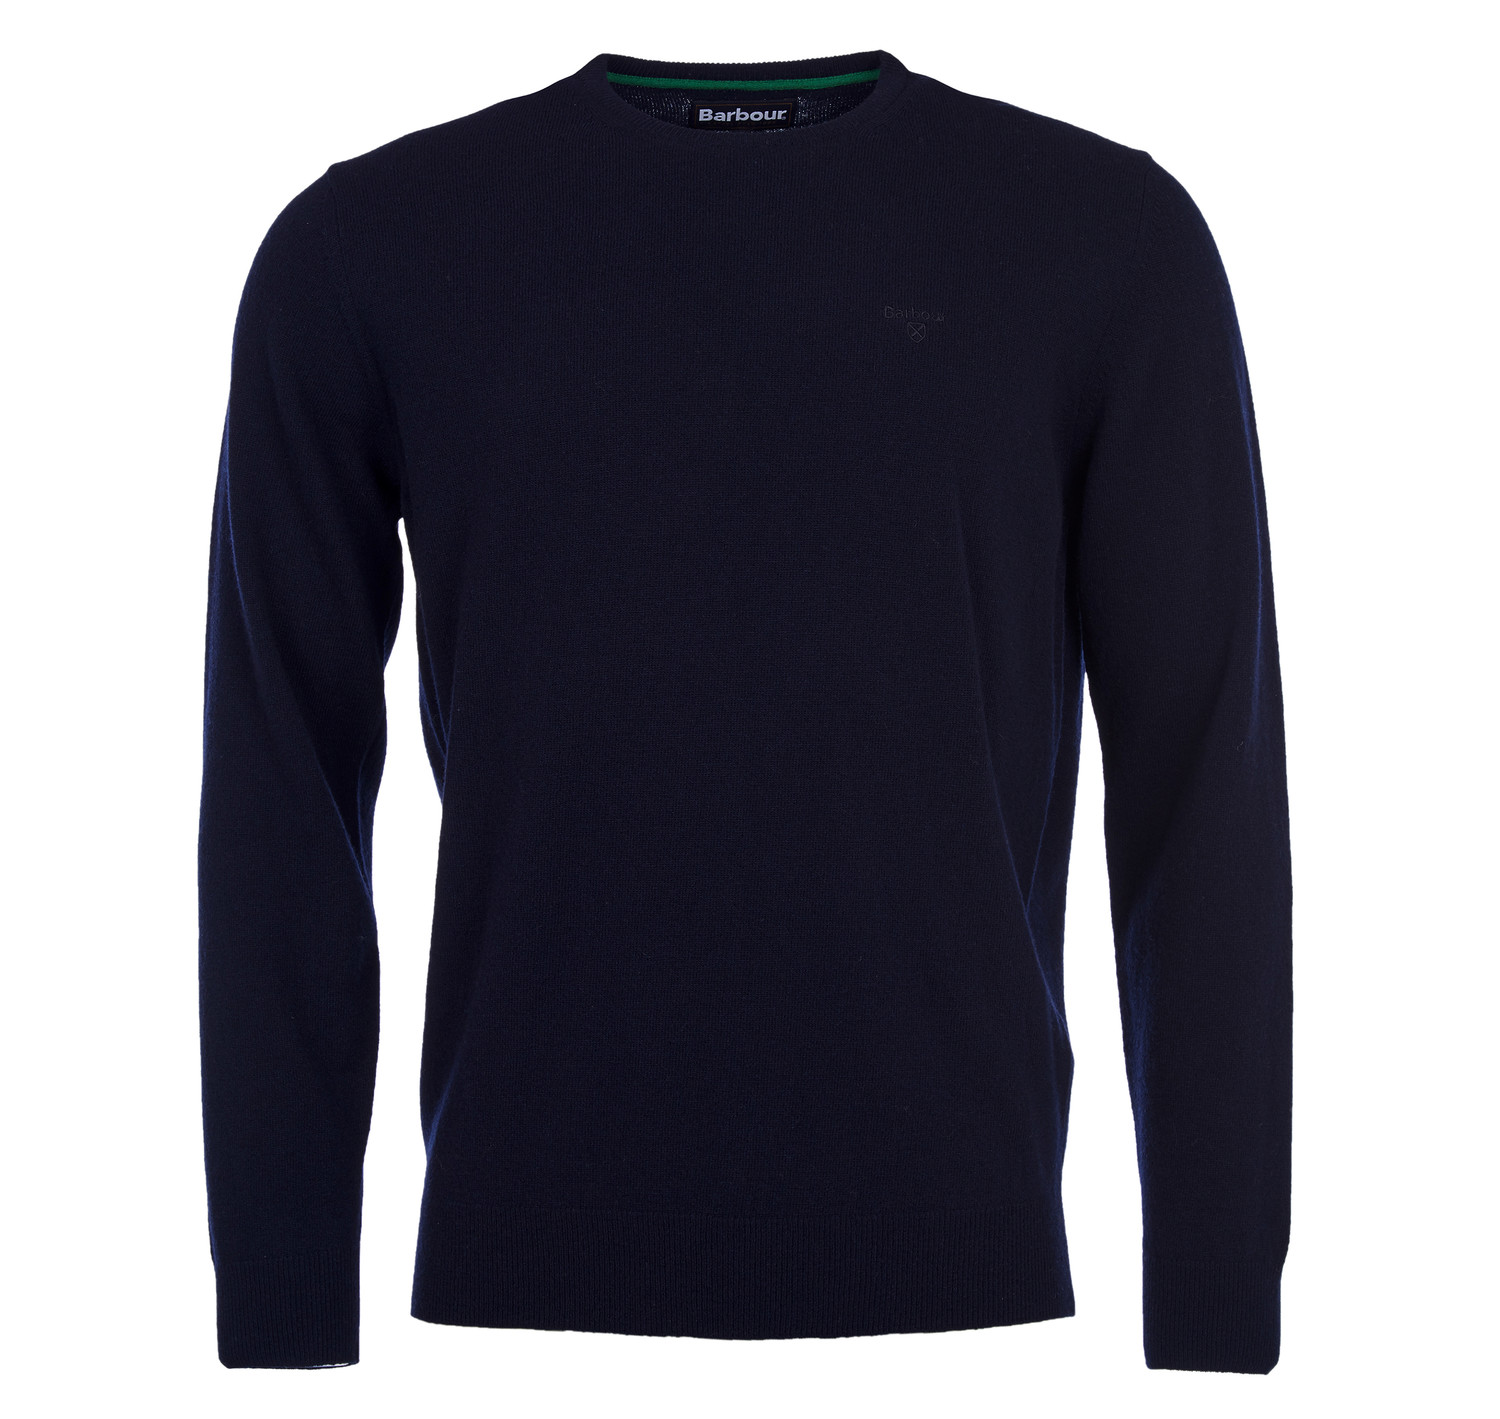 BARBOUR ESSENTIAL LAMBSWOOL NAVY CREW NECK SWEATER